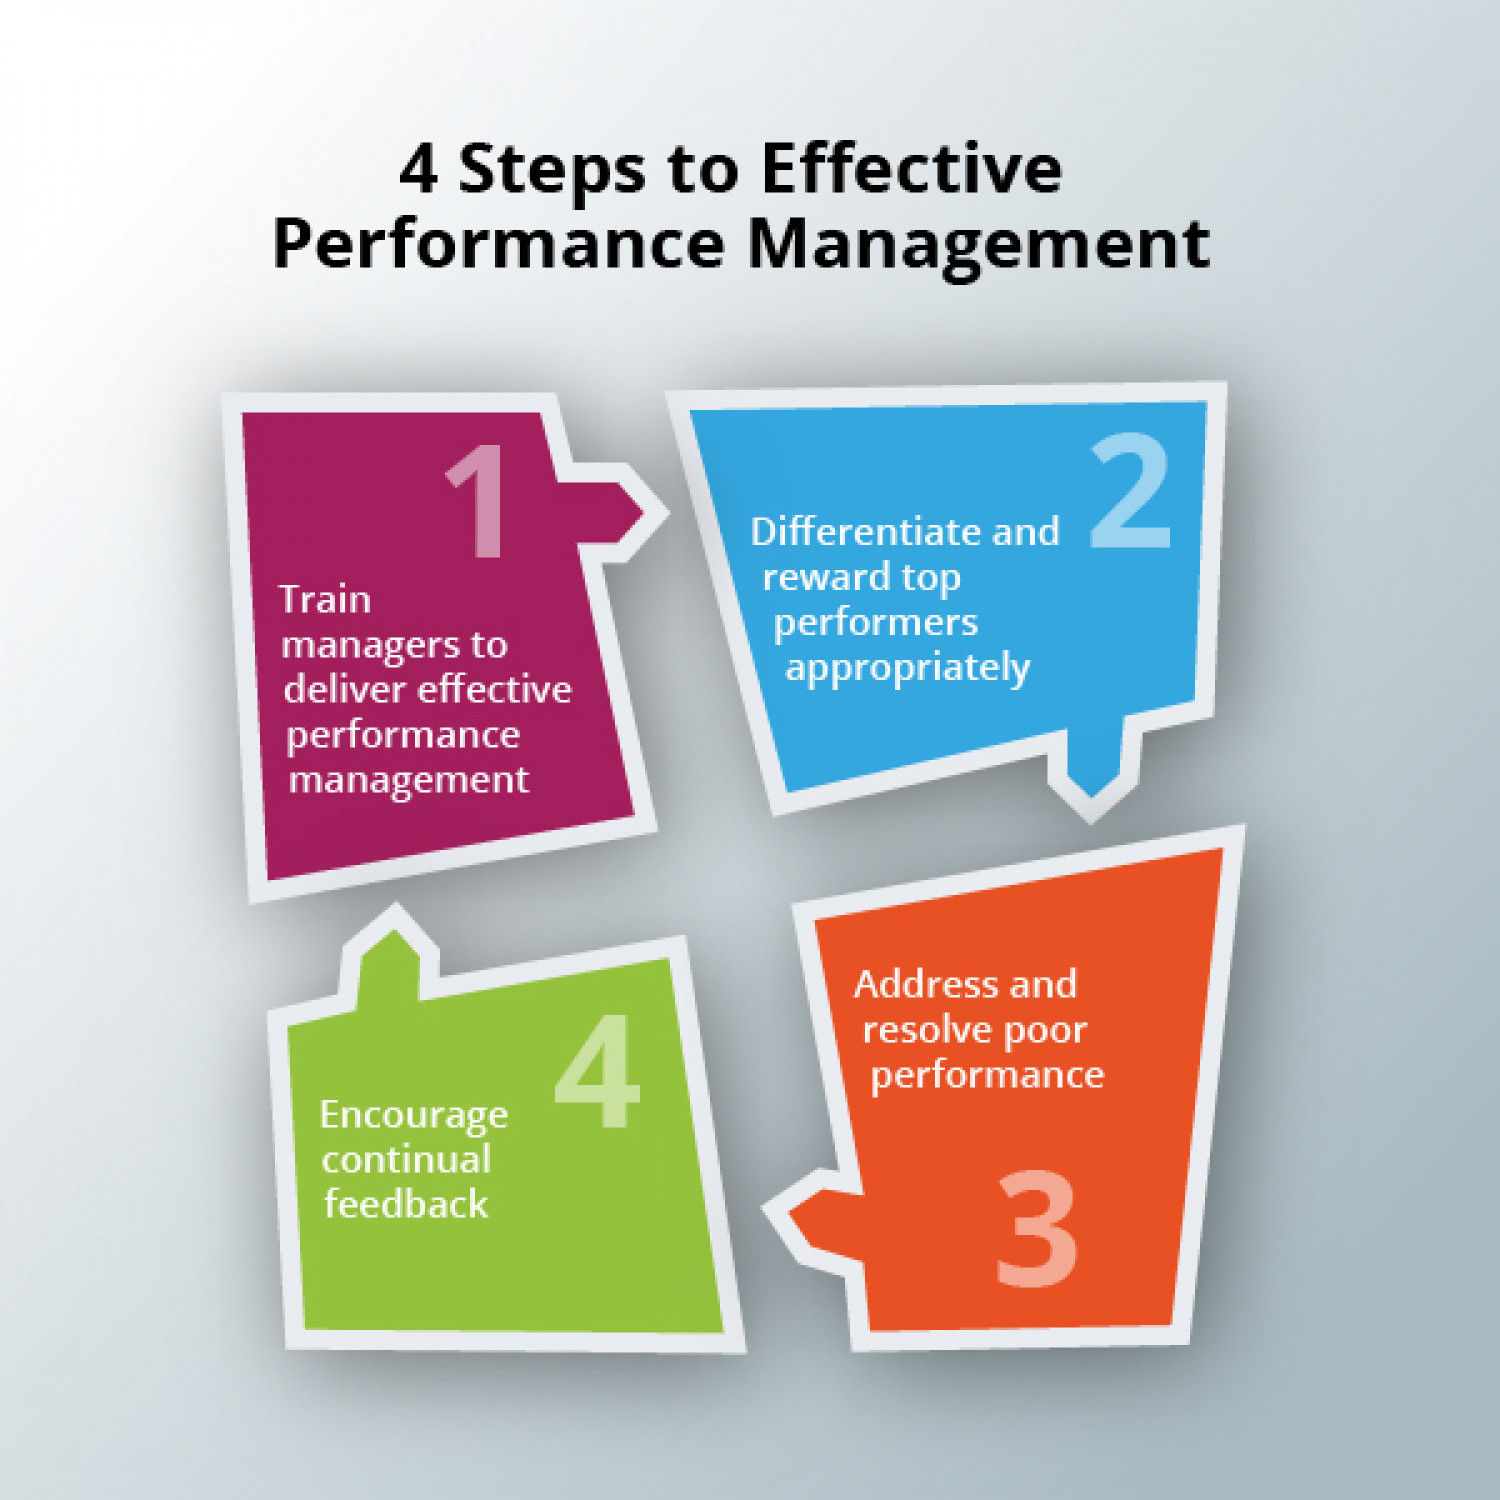 performance management in an organization management essay Management essays - an organization's performance success will be inherently based on the performance effectiveness of its personnel.